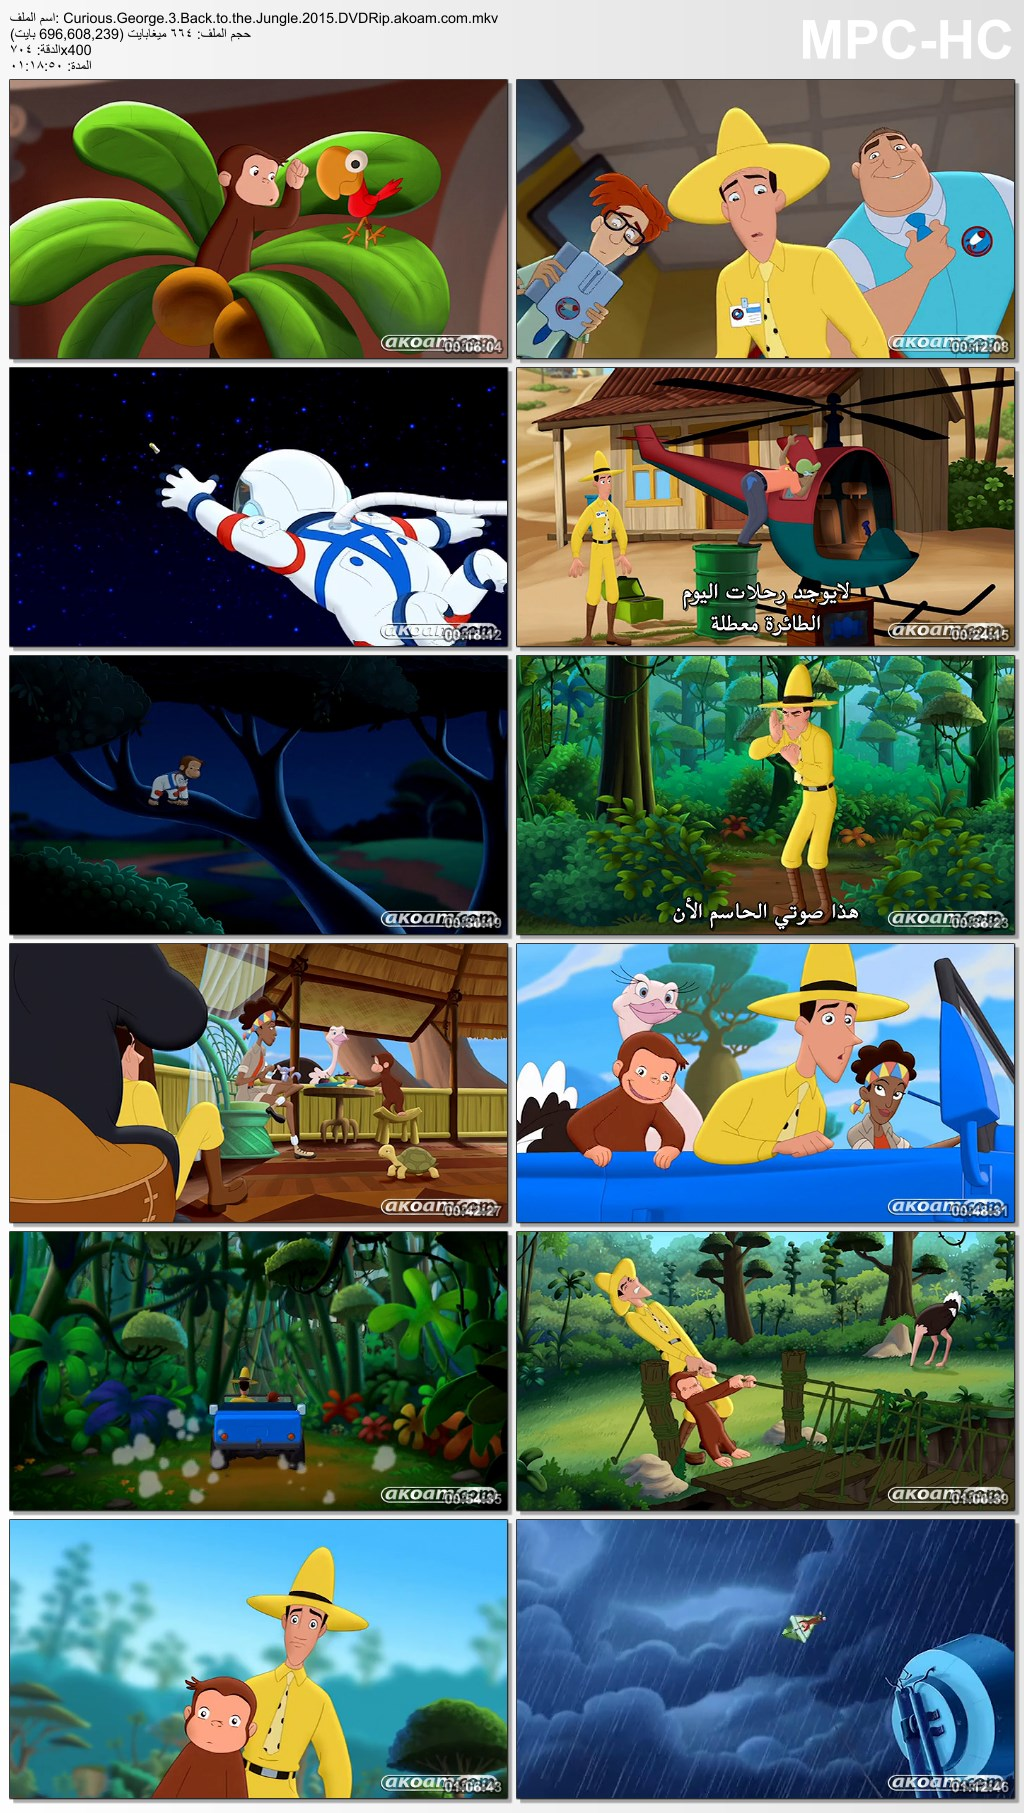 Curious George 3: Back to the Jungle,Curious George 3: Back to the Jungle 2015,Curious George,Curious George 3,Back to the Jungle,الانمي,الانيميشن,العائلي